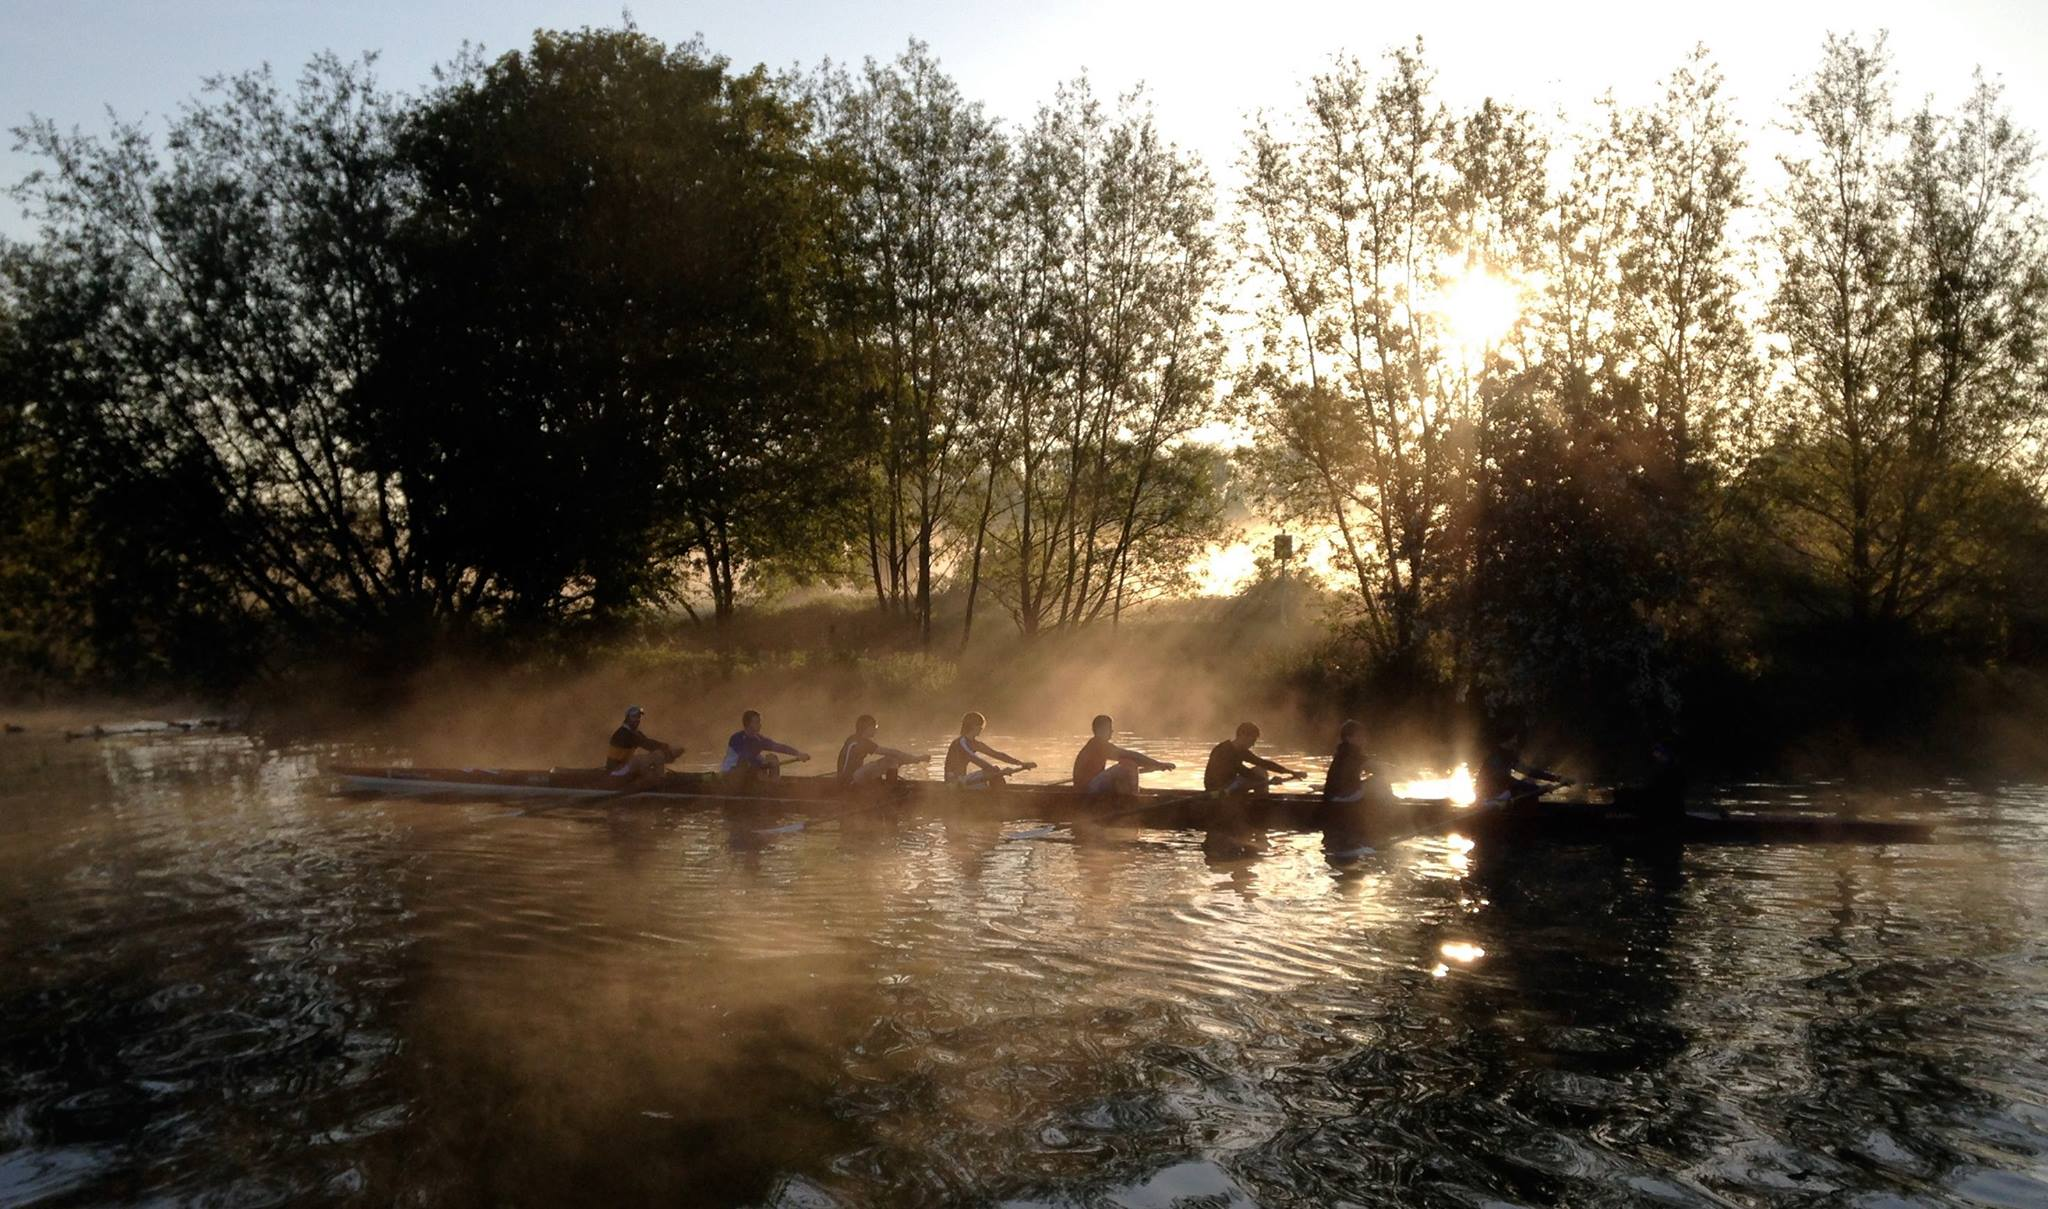 Merton M1 - early morning training on the Isis